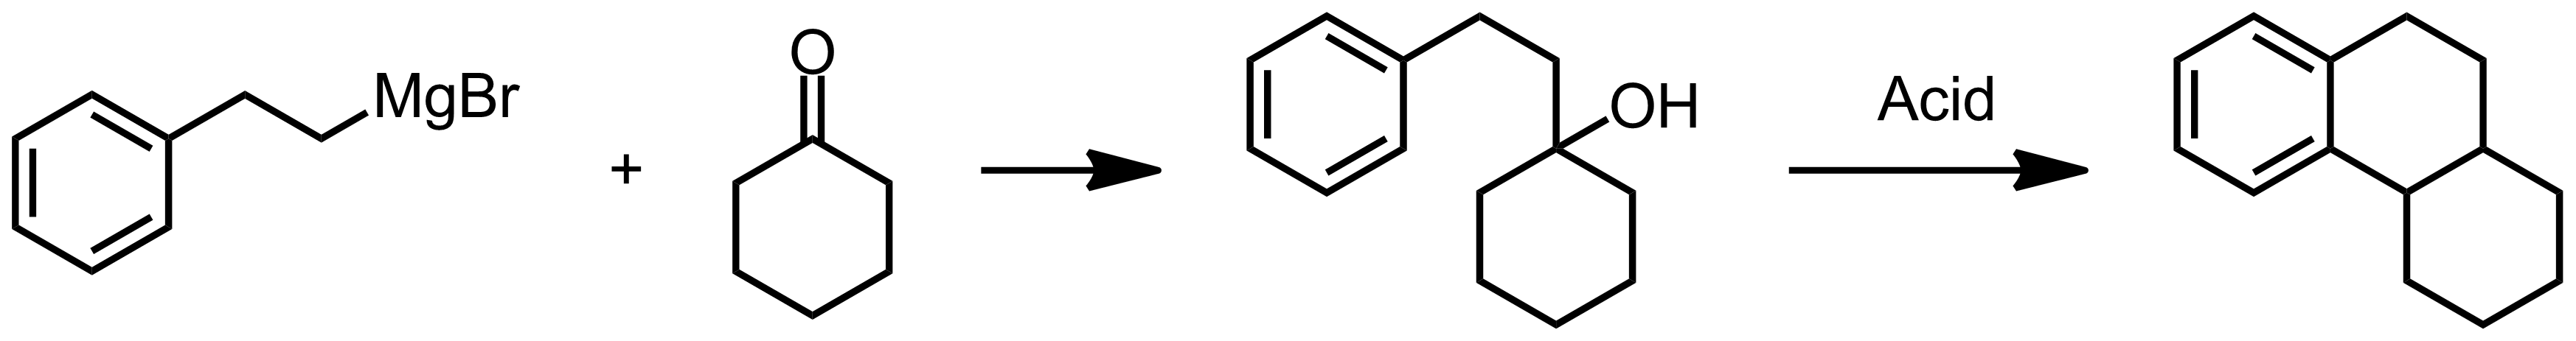 Schematic representation of the Bogert-Cook Synthesis.